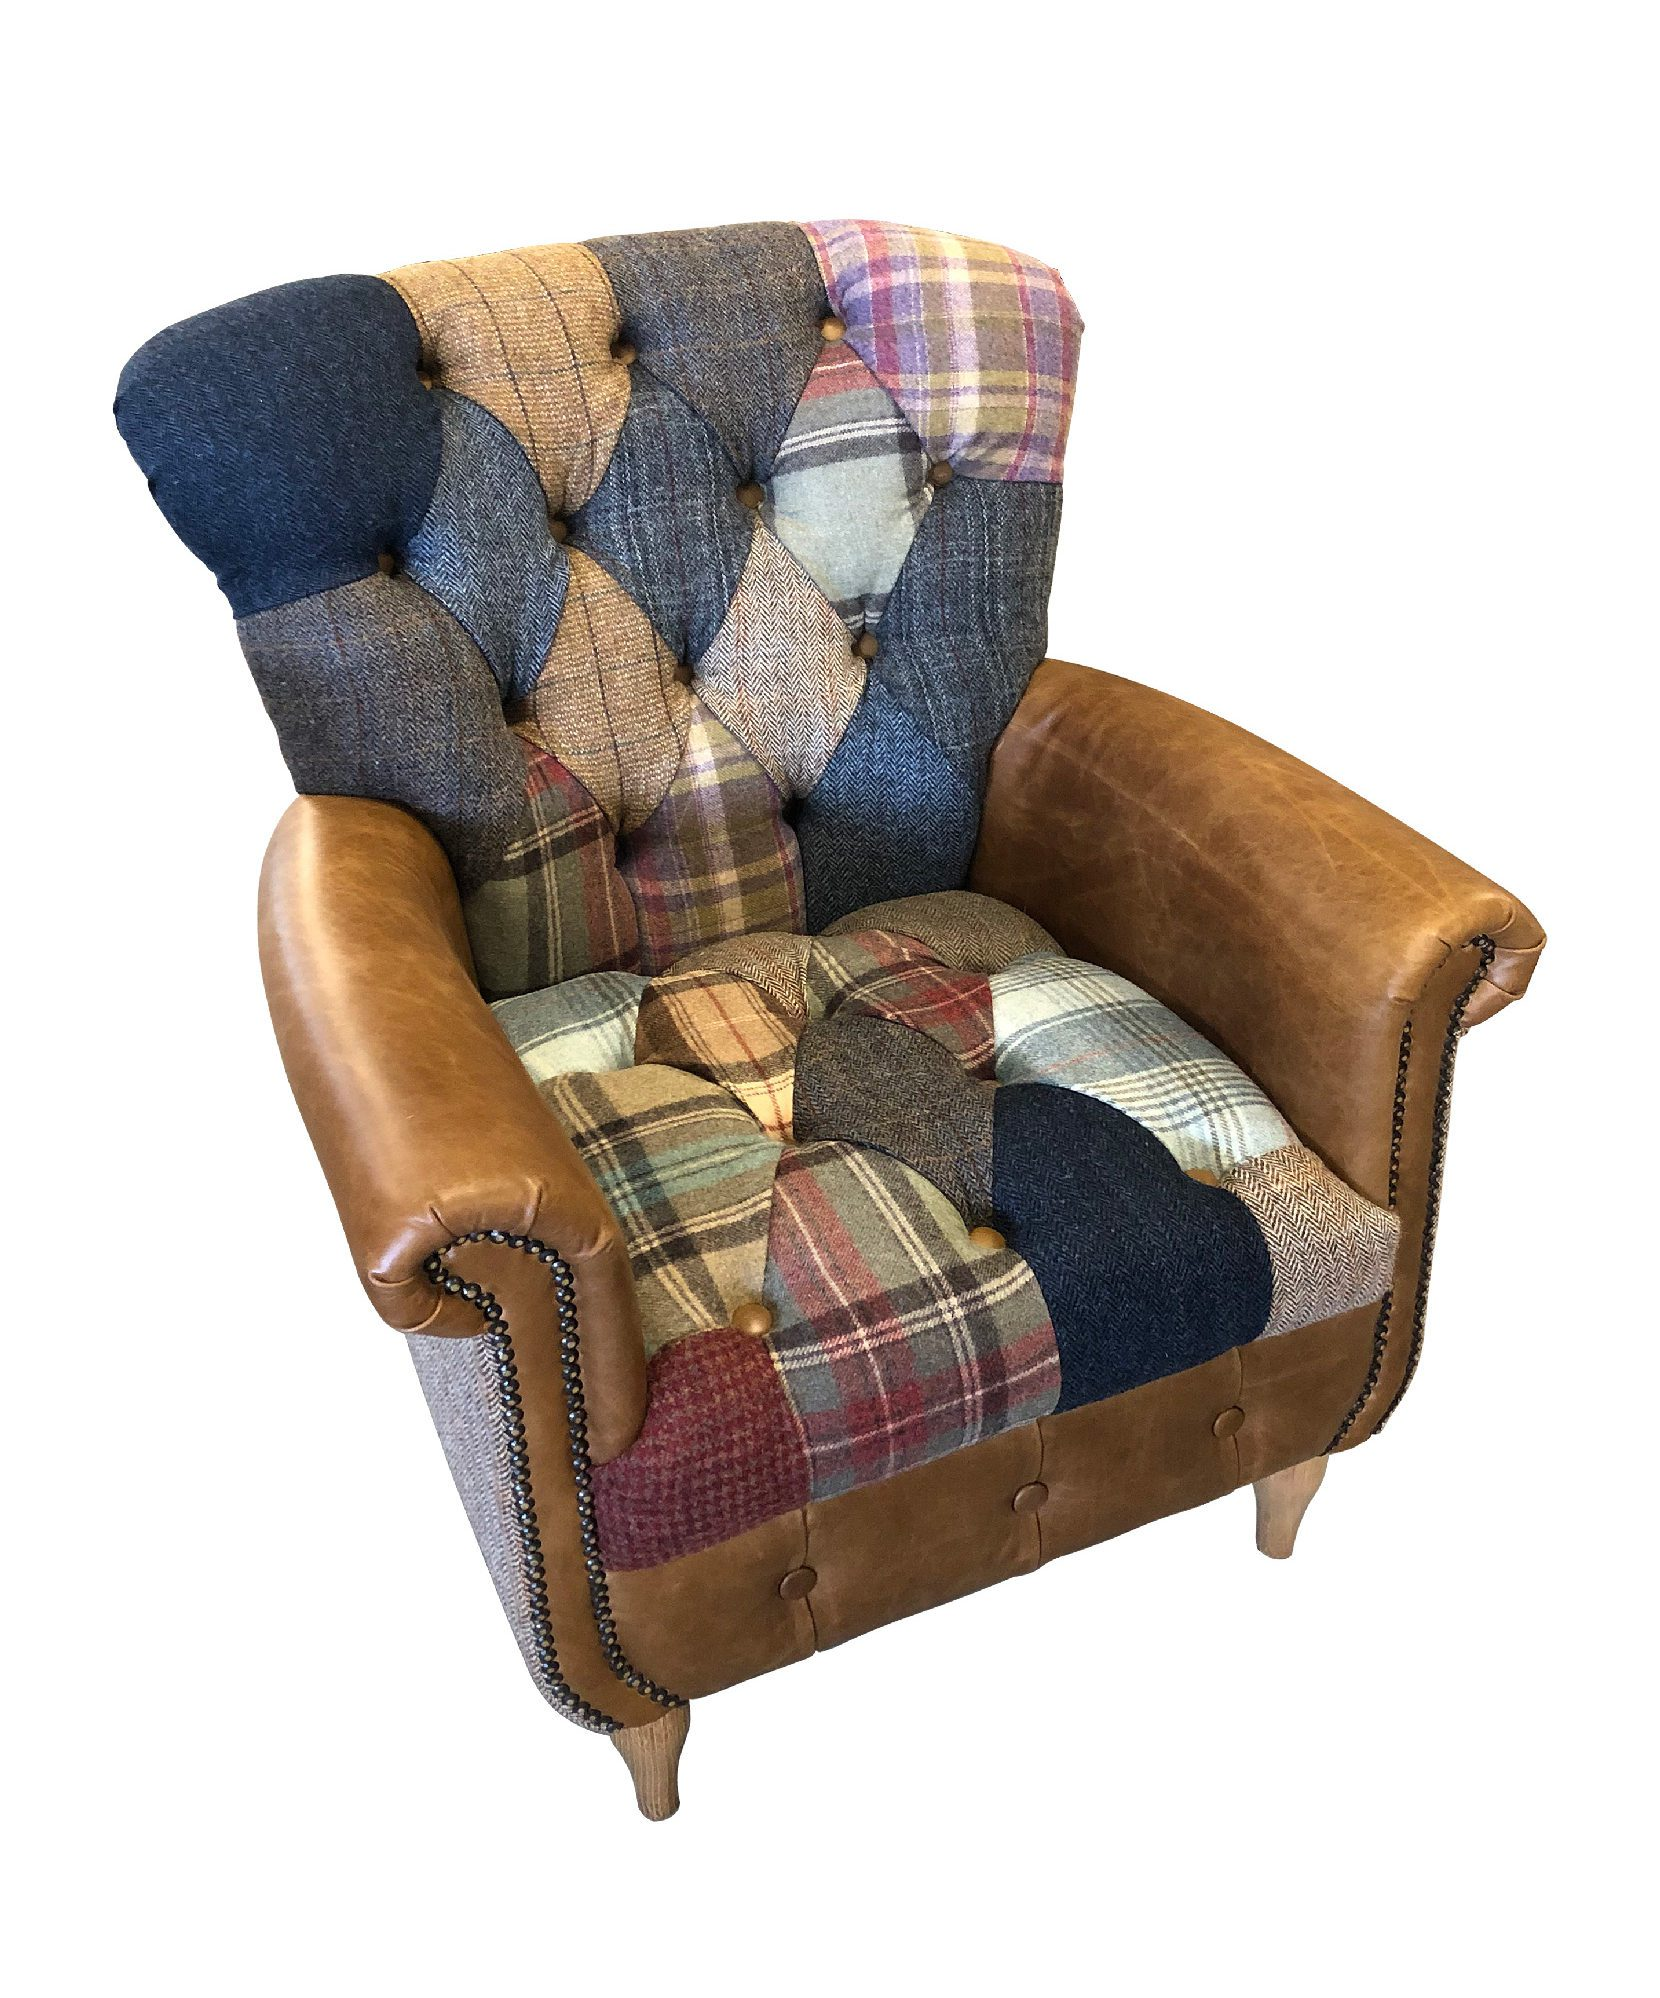 Vintage Sofa Co Gotham Harlequin Fast Track Chair in patchwork harris tweed and wool fabric with cerato brown leather arms and detailing on turned oak legs cutout